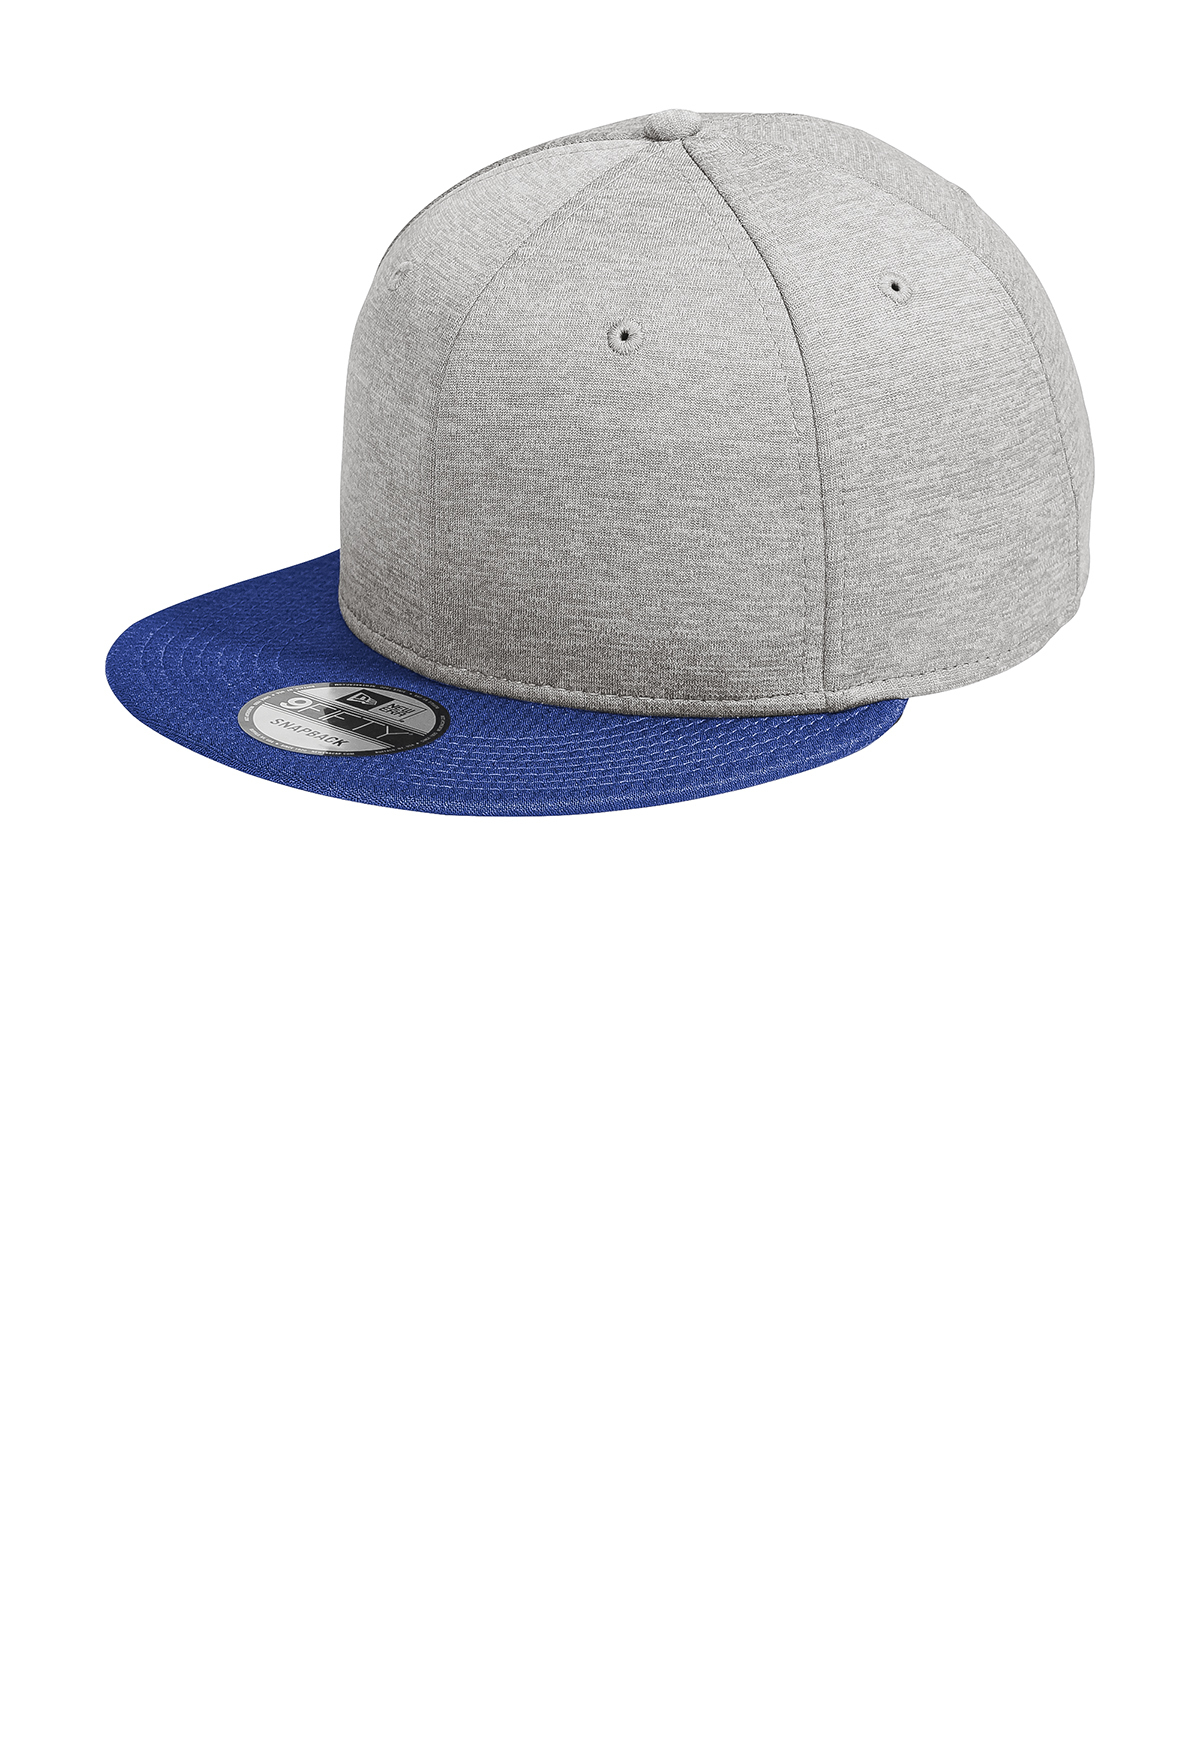 New Era ® NE408 - Shadow Heather Striped Flat Bill ...